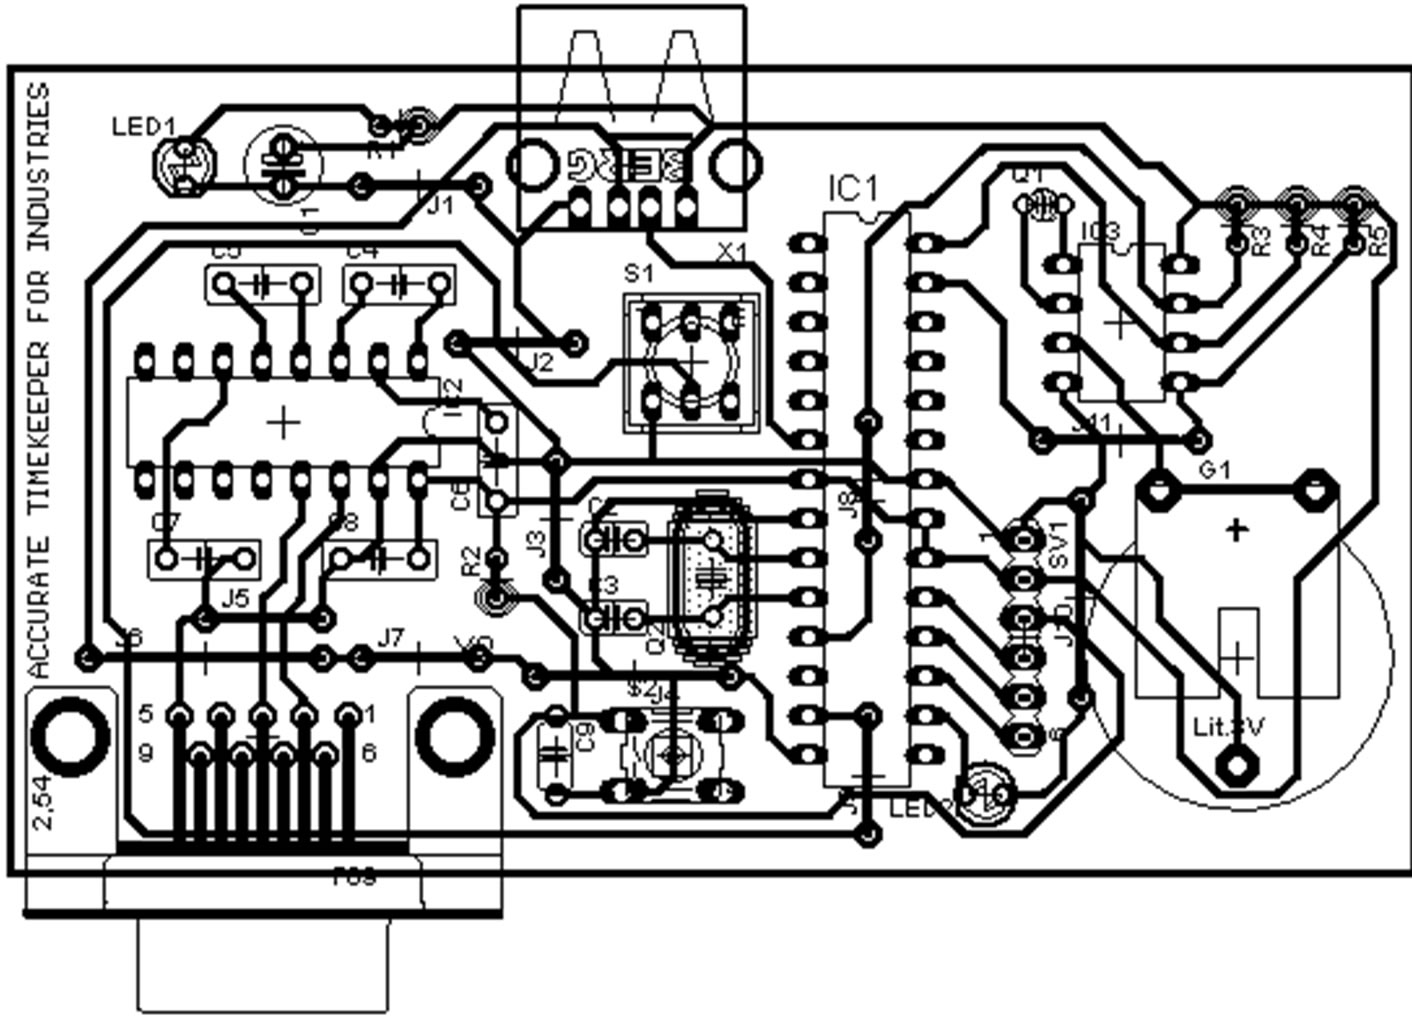 cyclic relay wiring diagram wiring librarysingle side pcb layout of the control circuit